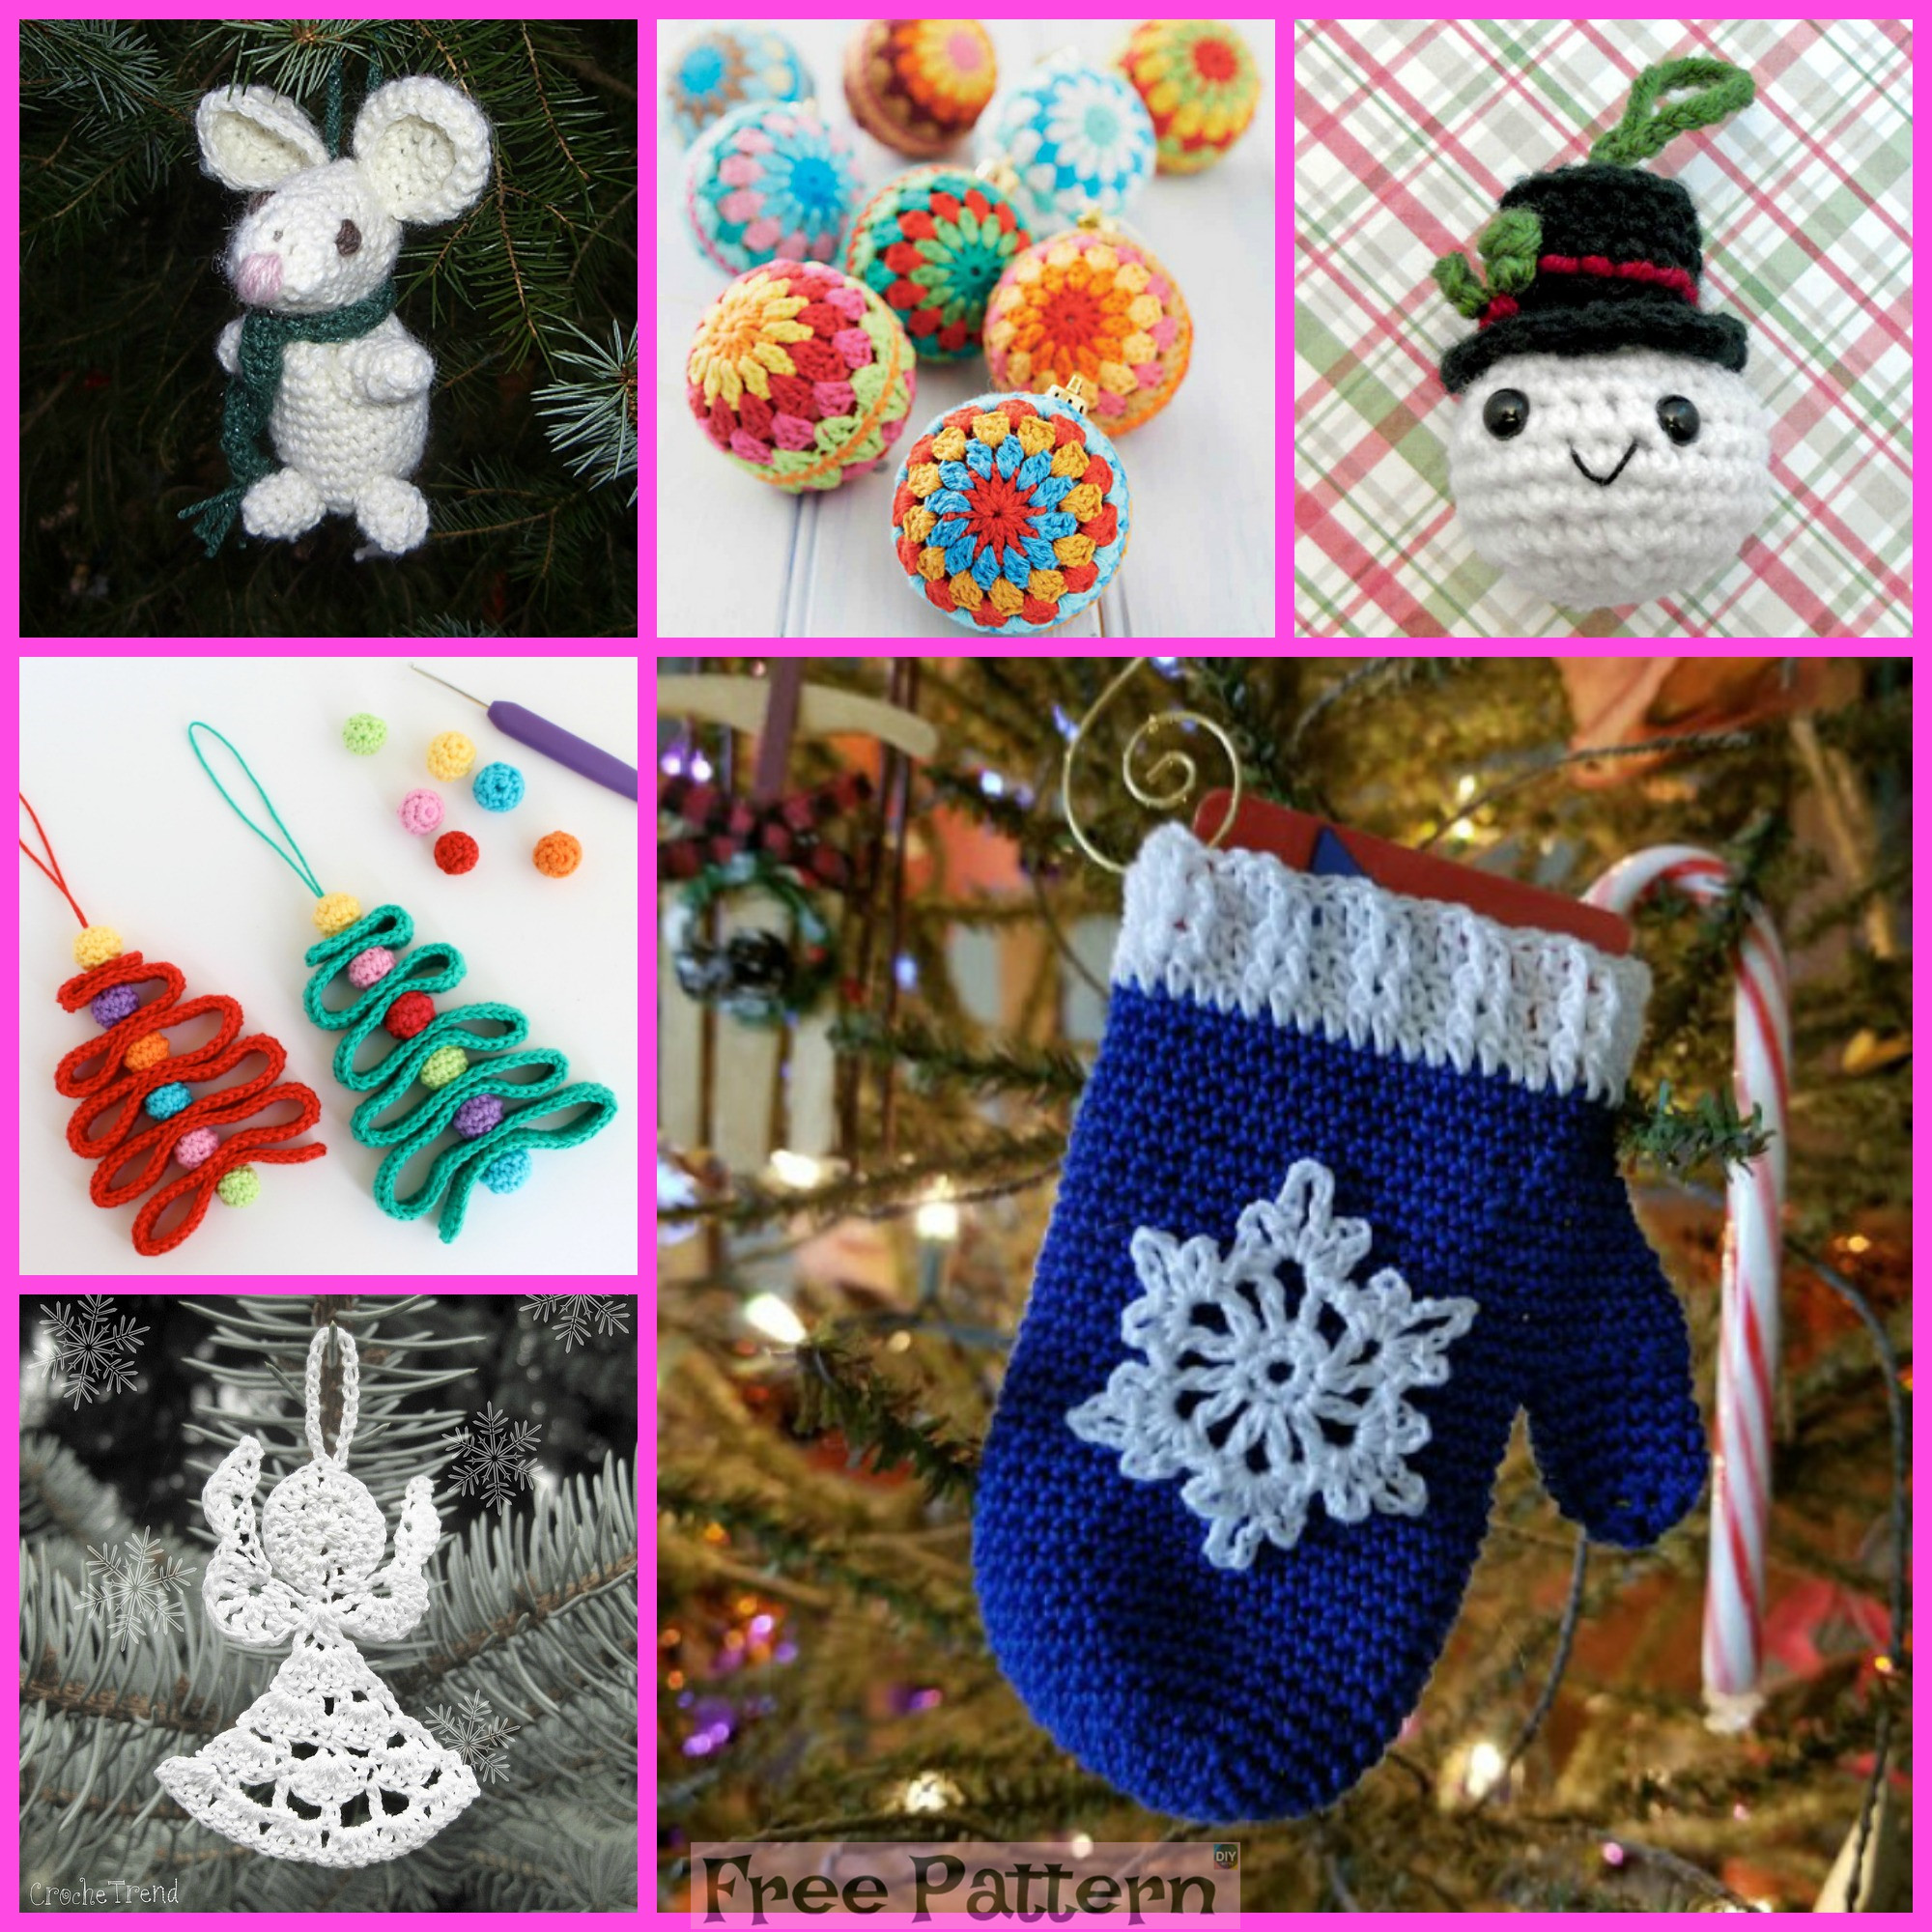 diy4ever-Crochet Christmas Ornaments - Free Patterns